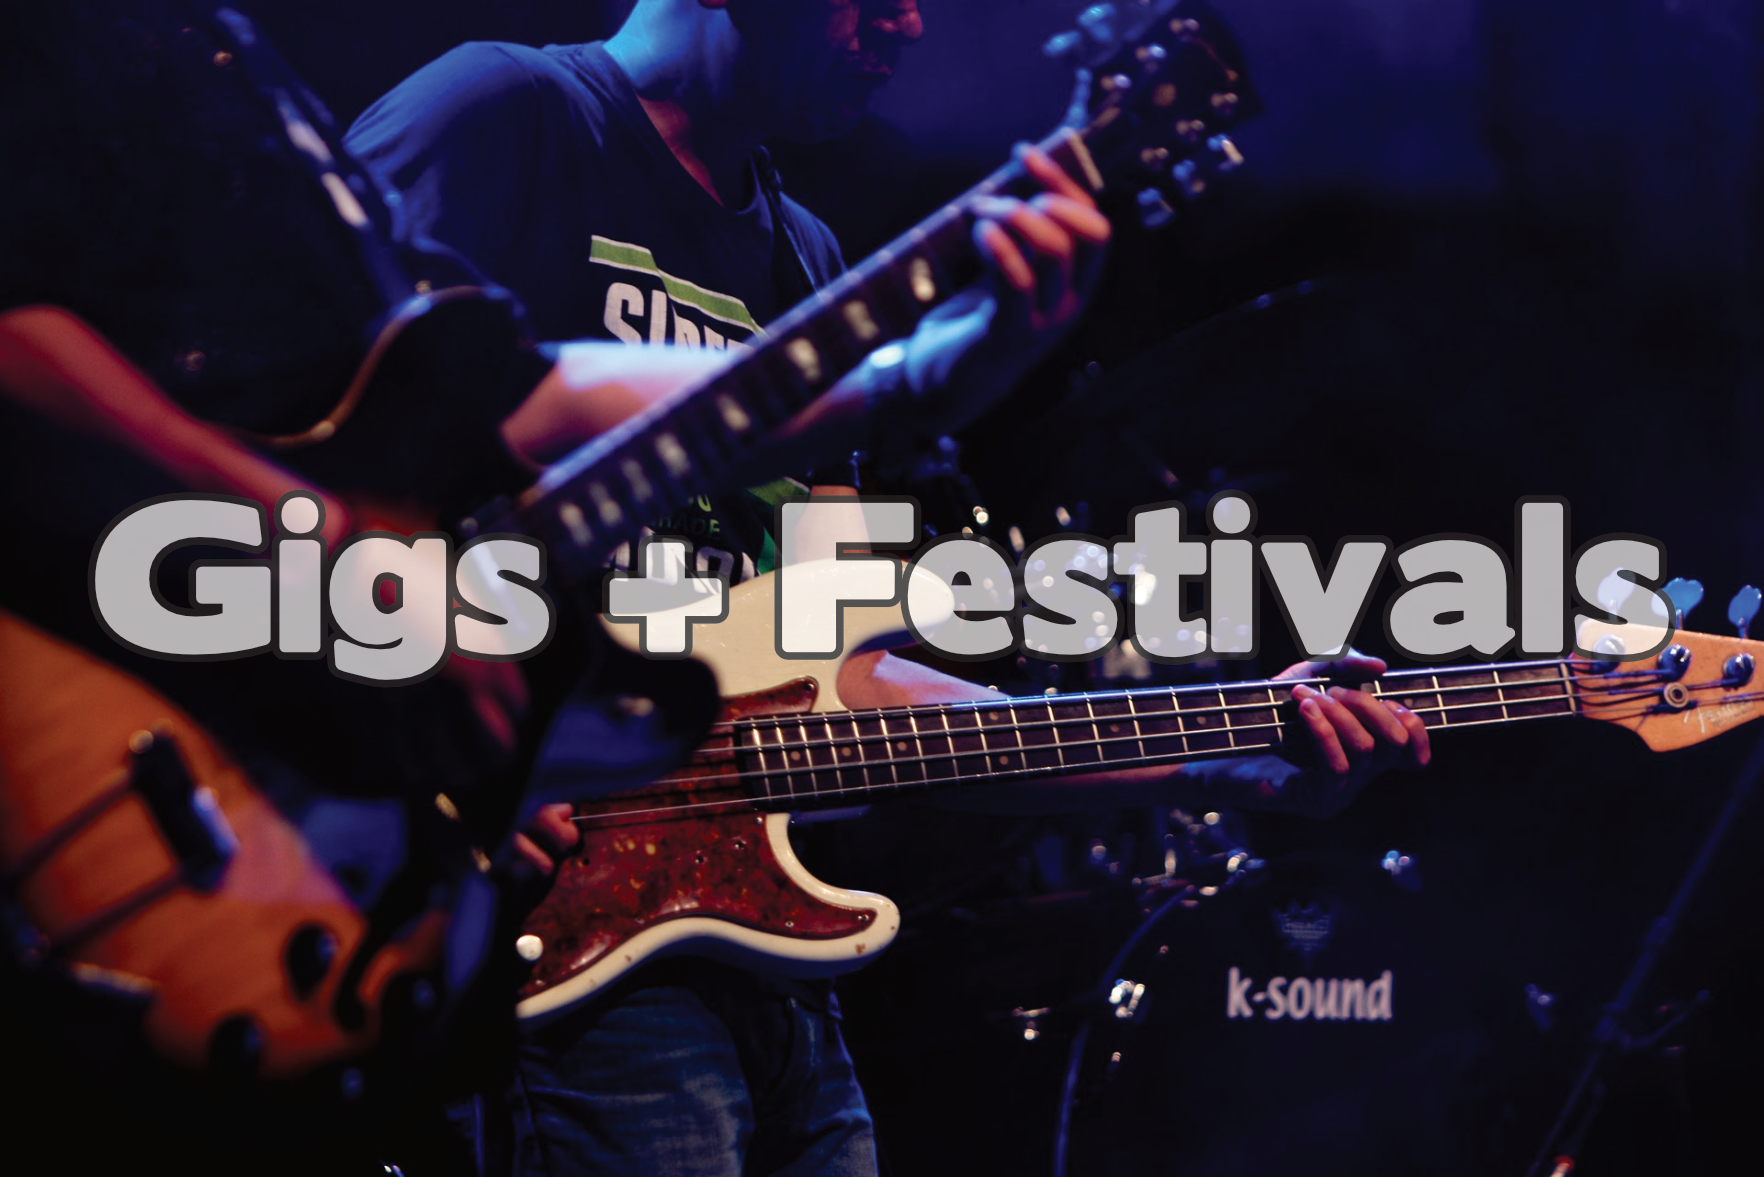 Gigs + Festival Image w:text